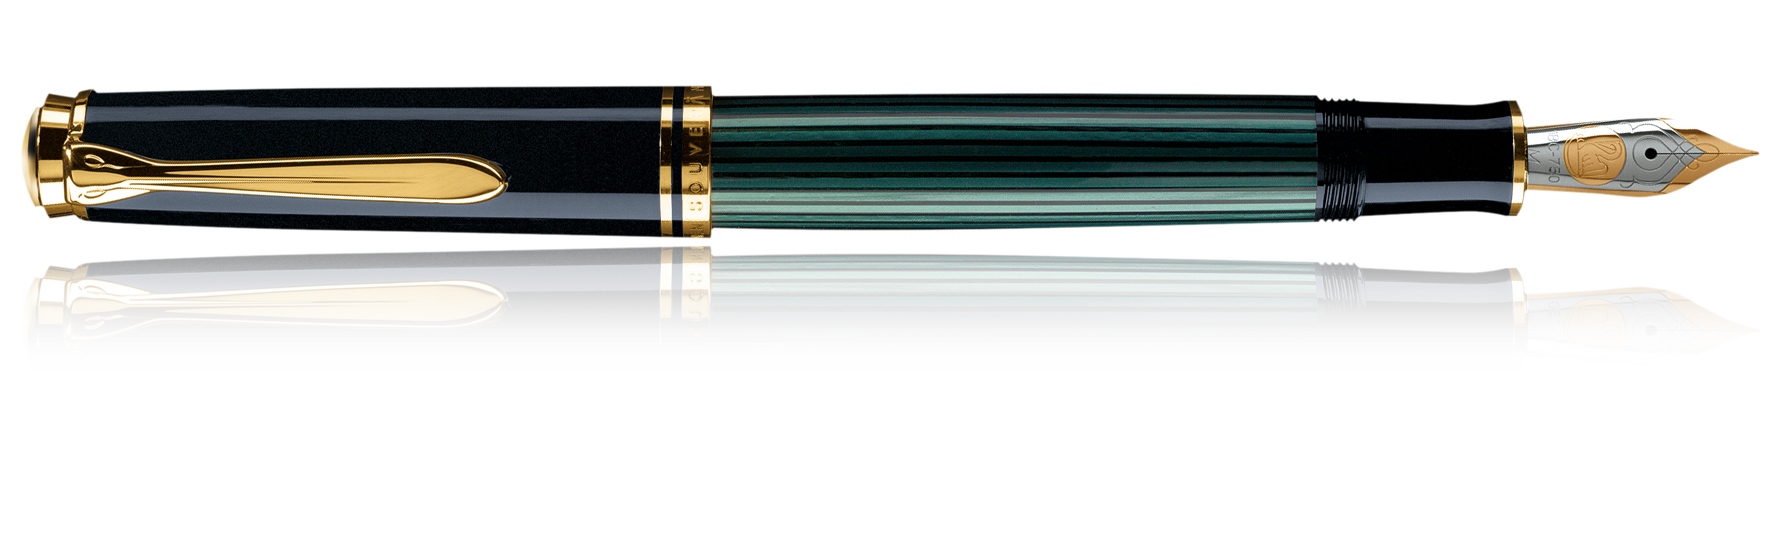 Pelikan Souverän Black/Green (gold trim) Fountain Pen